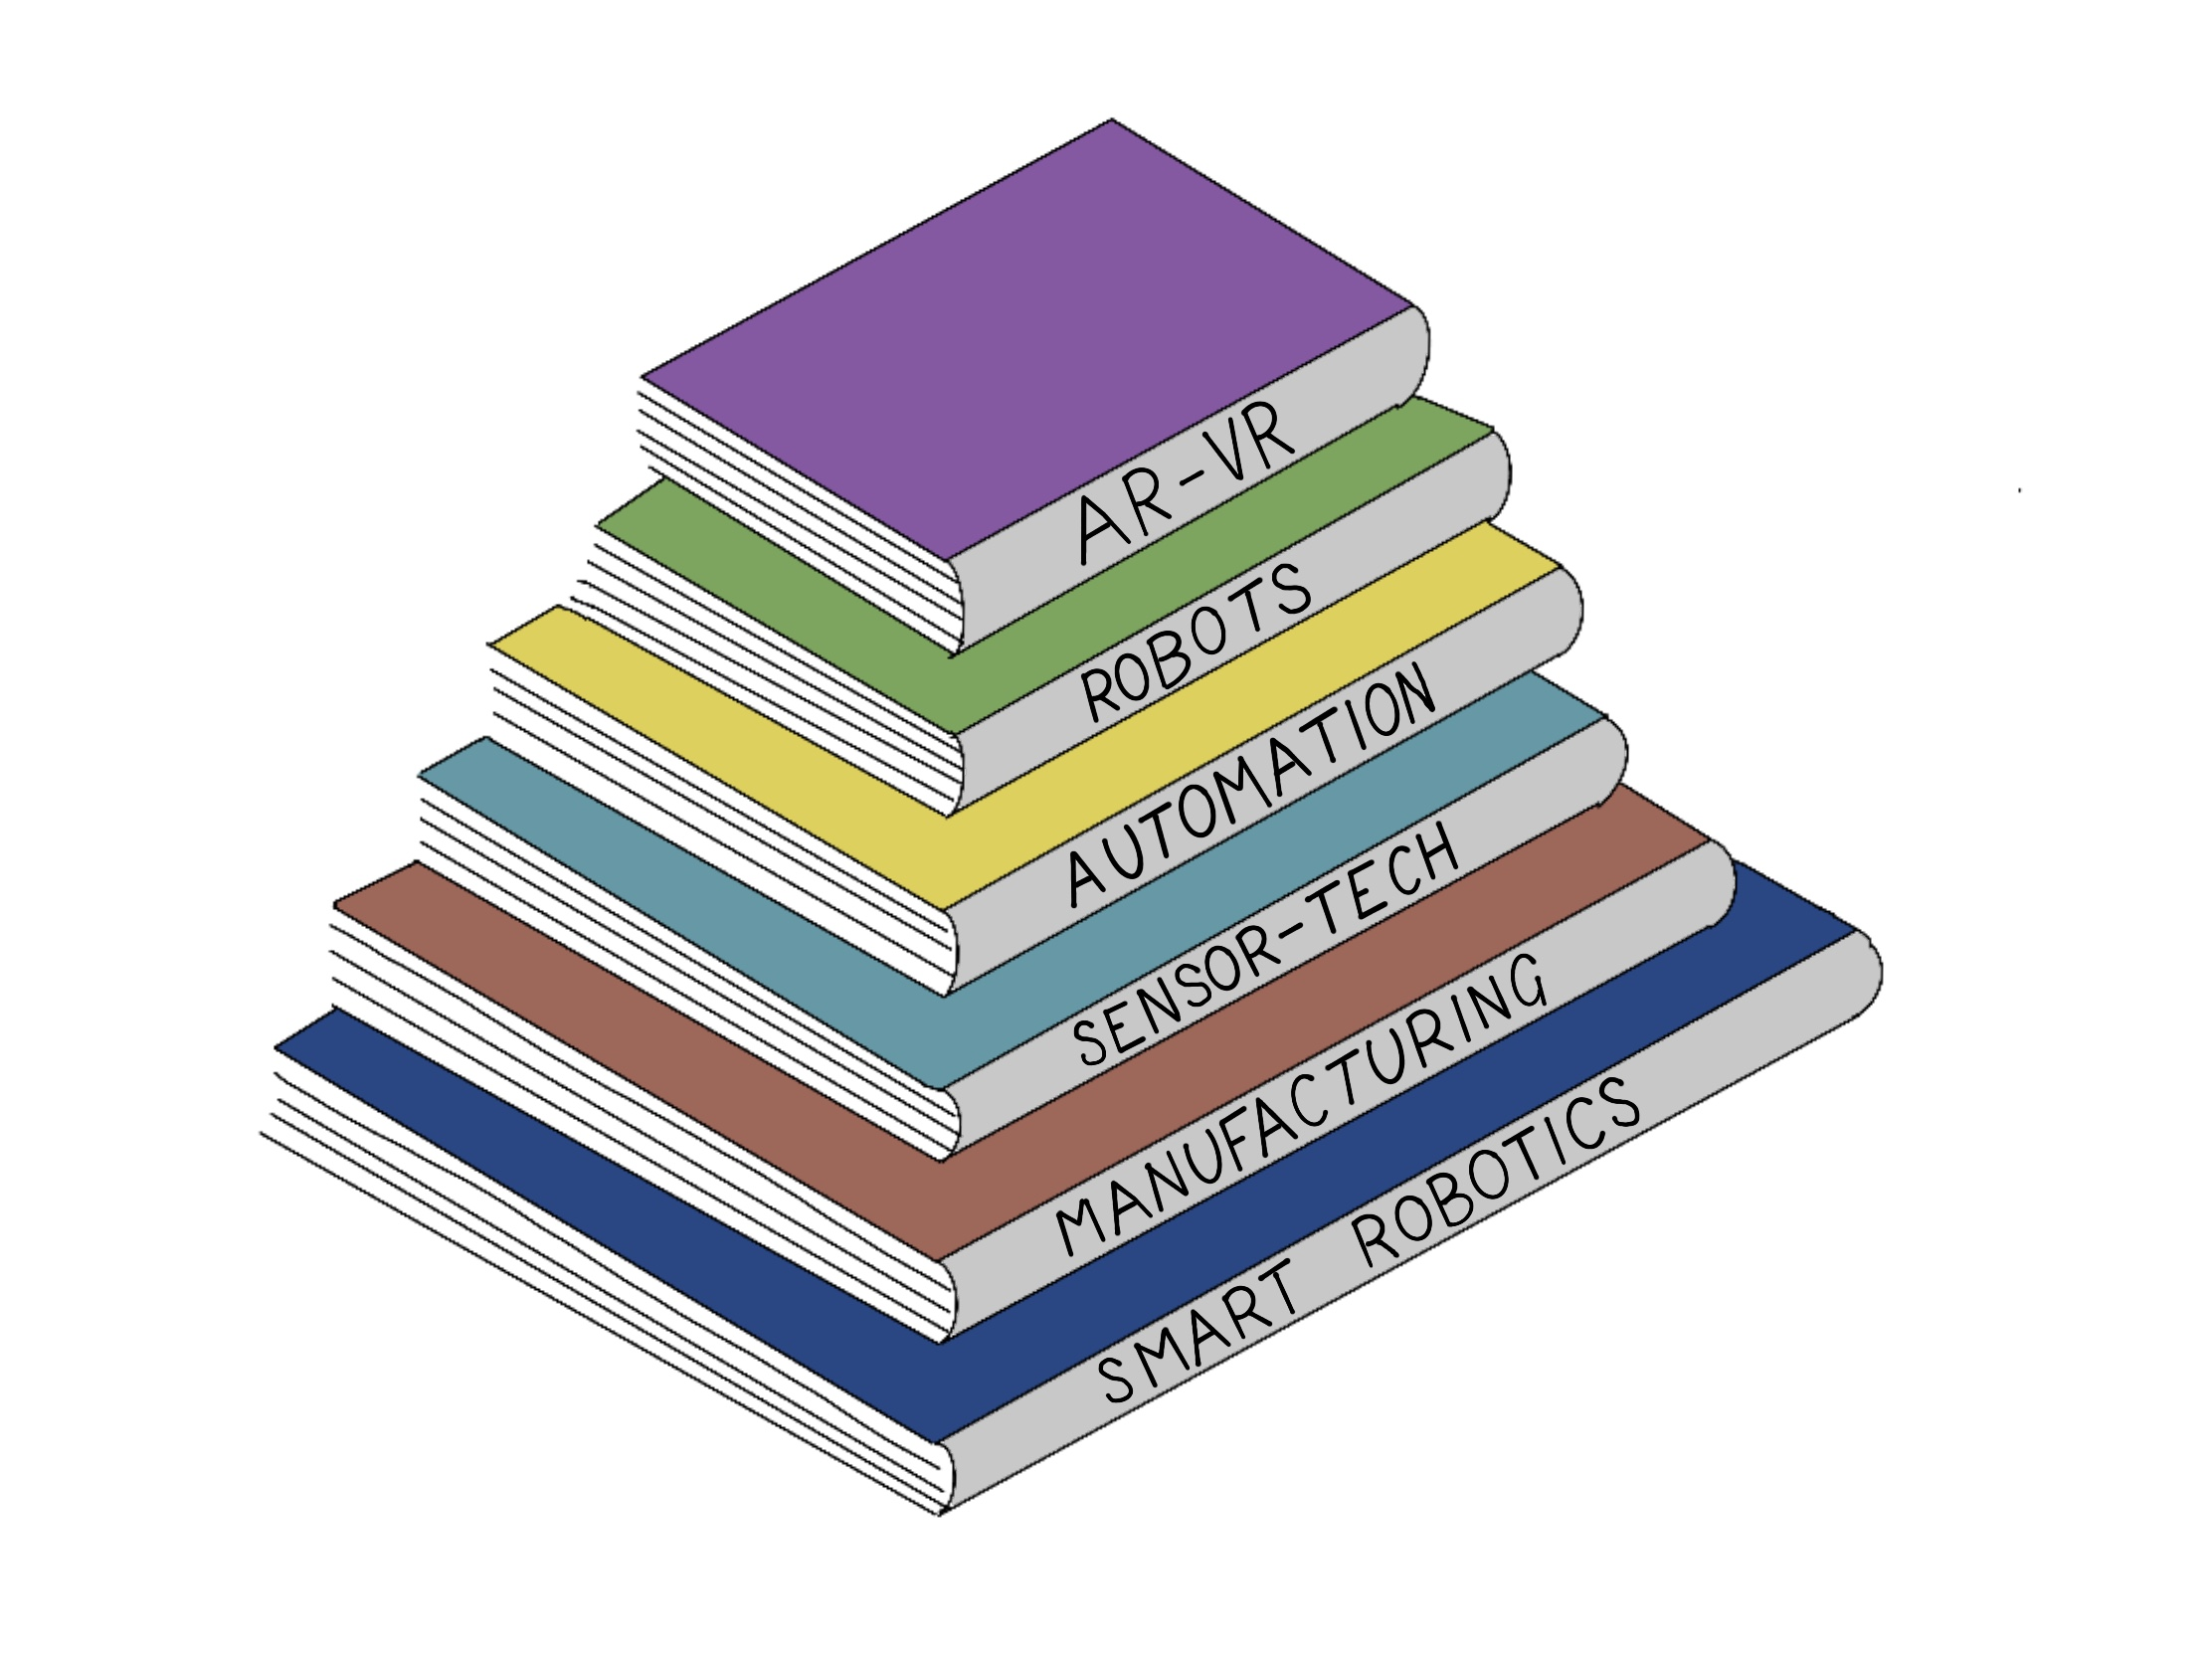 cartoon image of a stack of books about manufacturing